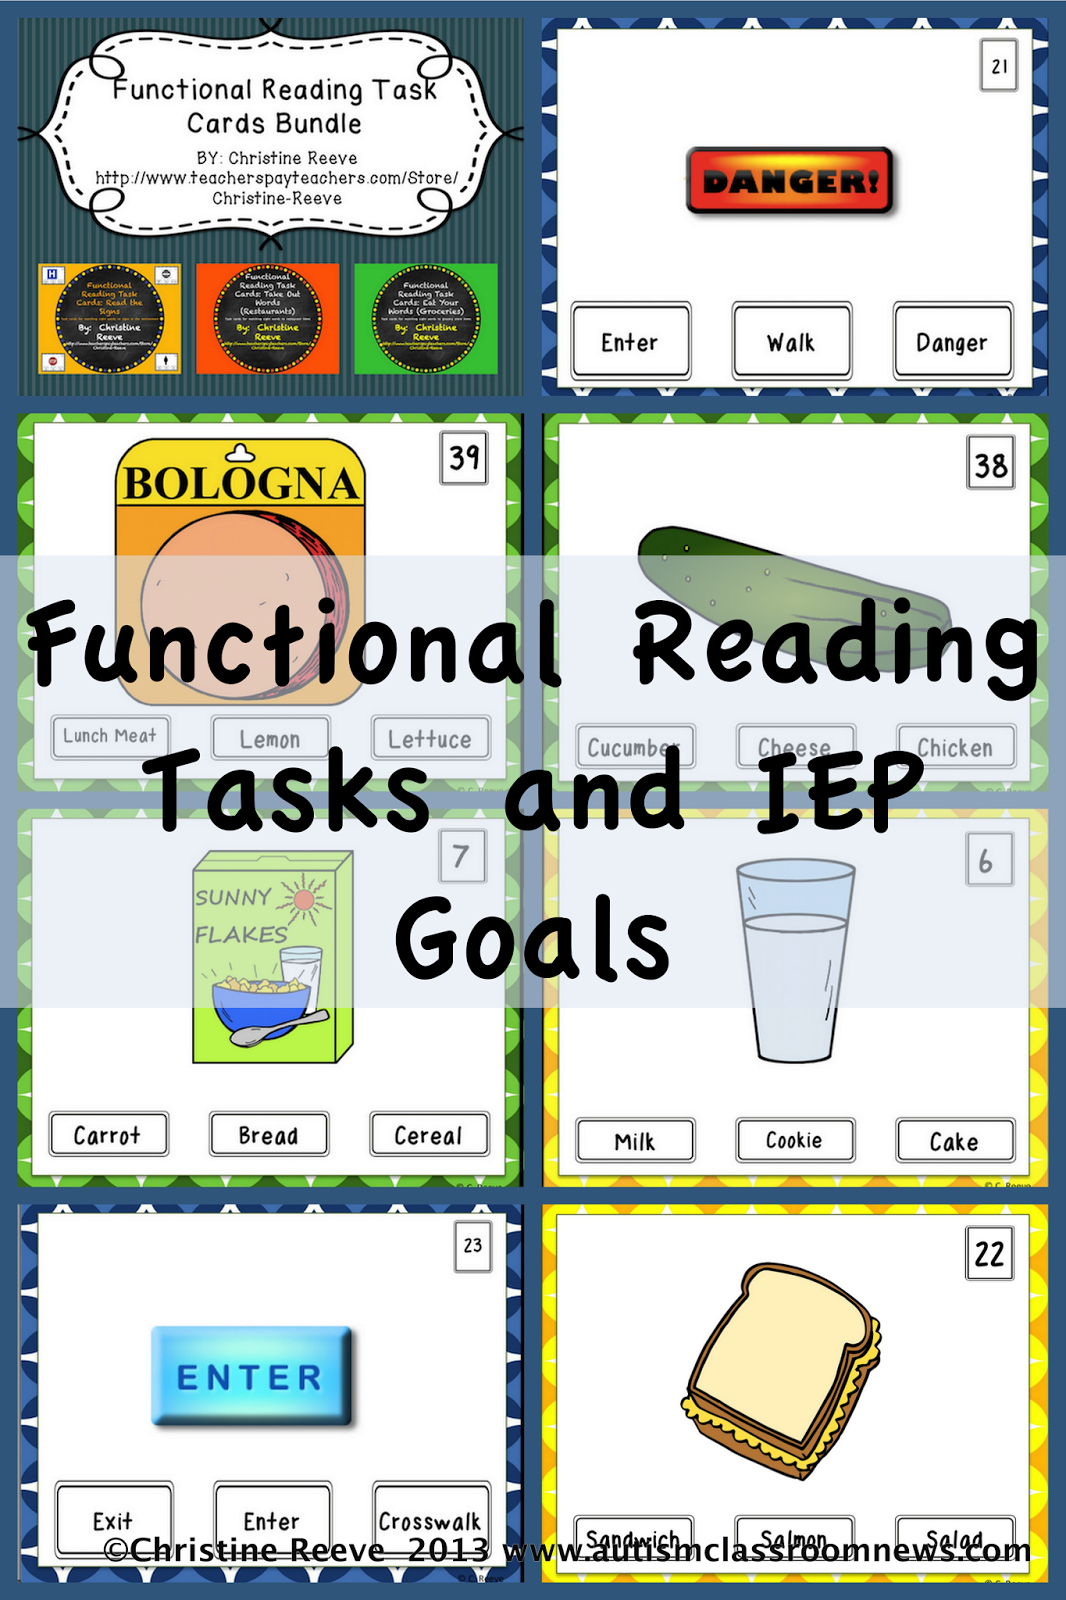 Worksheets Functional Reading Worksheets functional reading tasks and iep goals skills spectrum goals